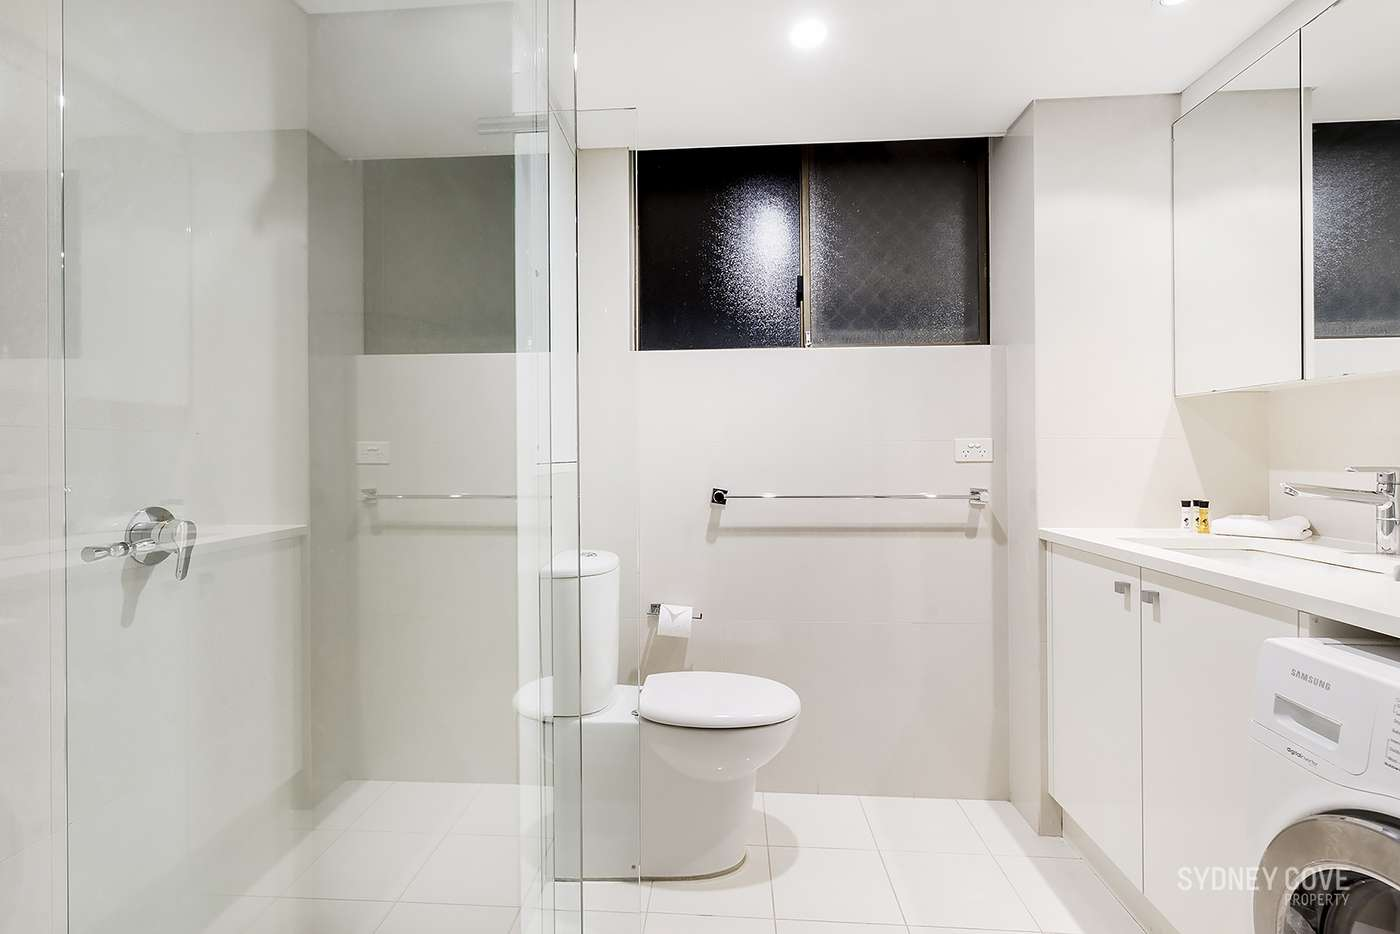 Sixth view of Homely apartment listing, 16/25 Market Street, Sydney NSW 2000